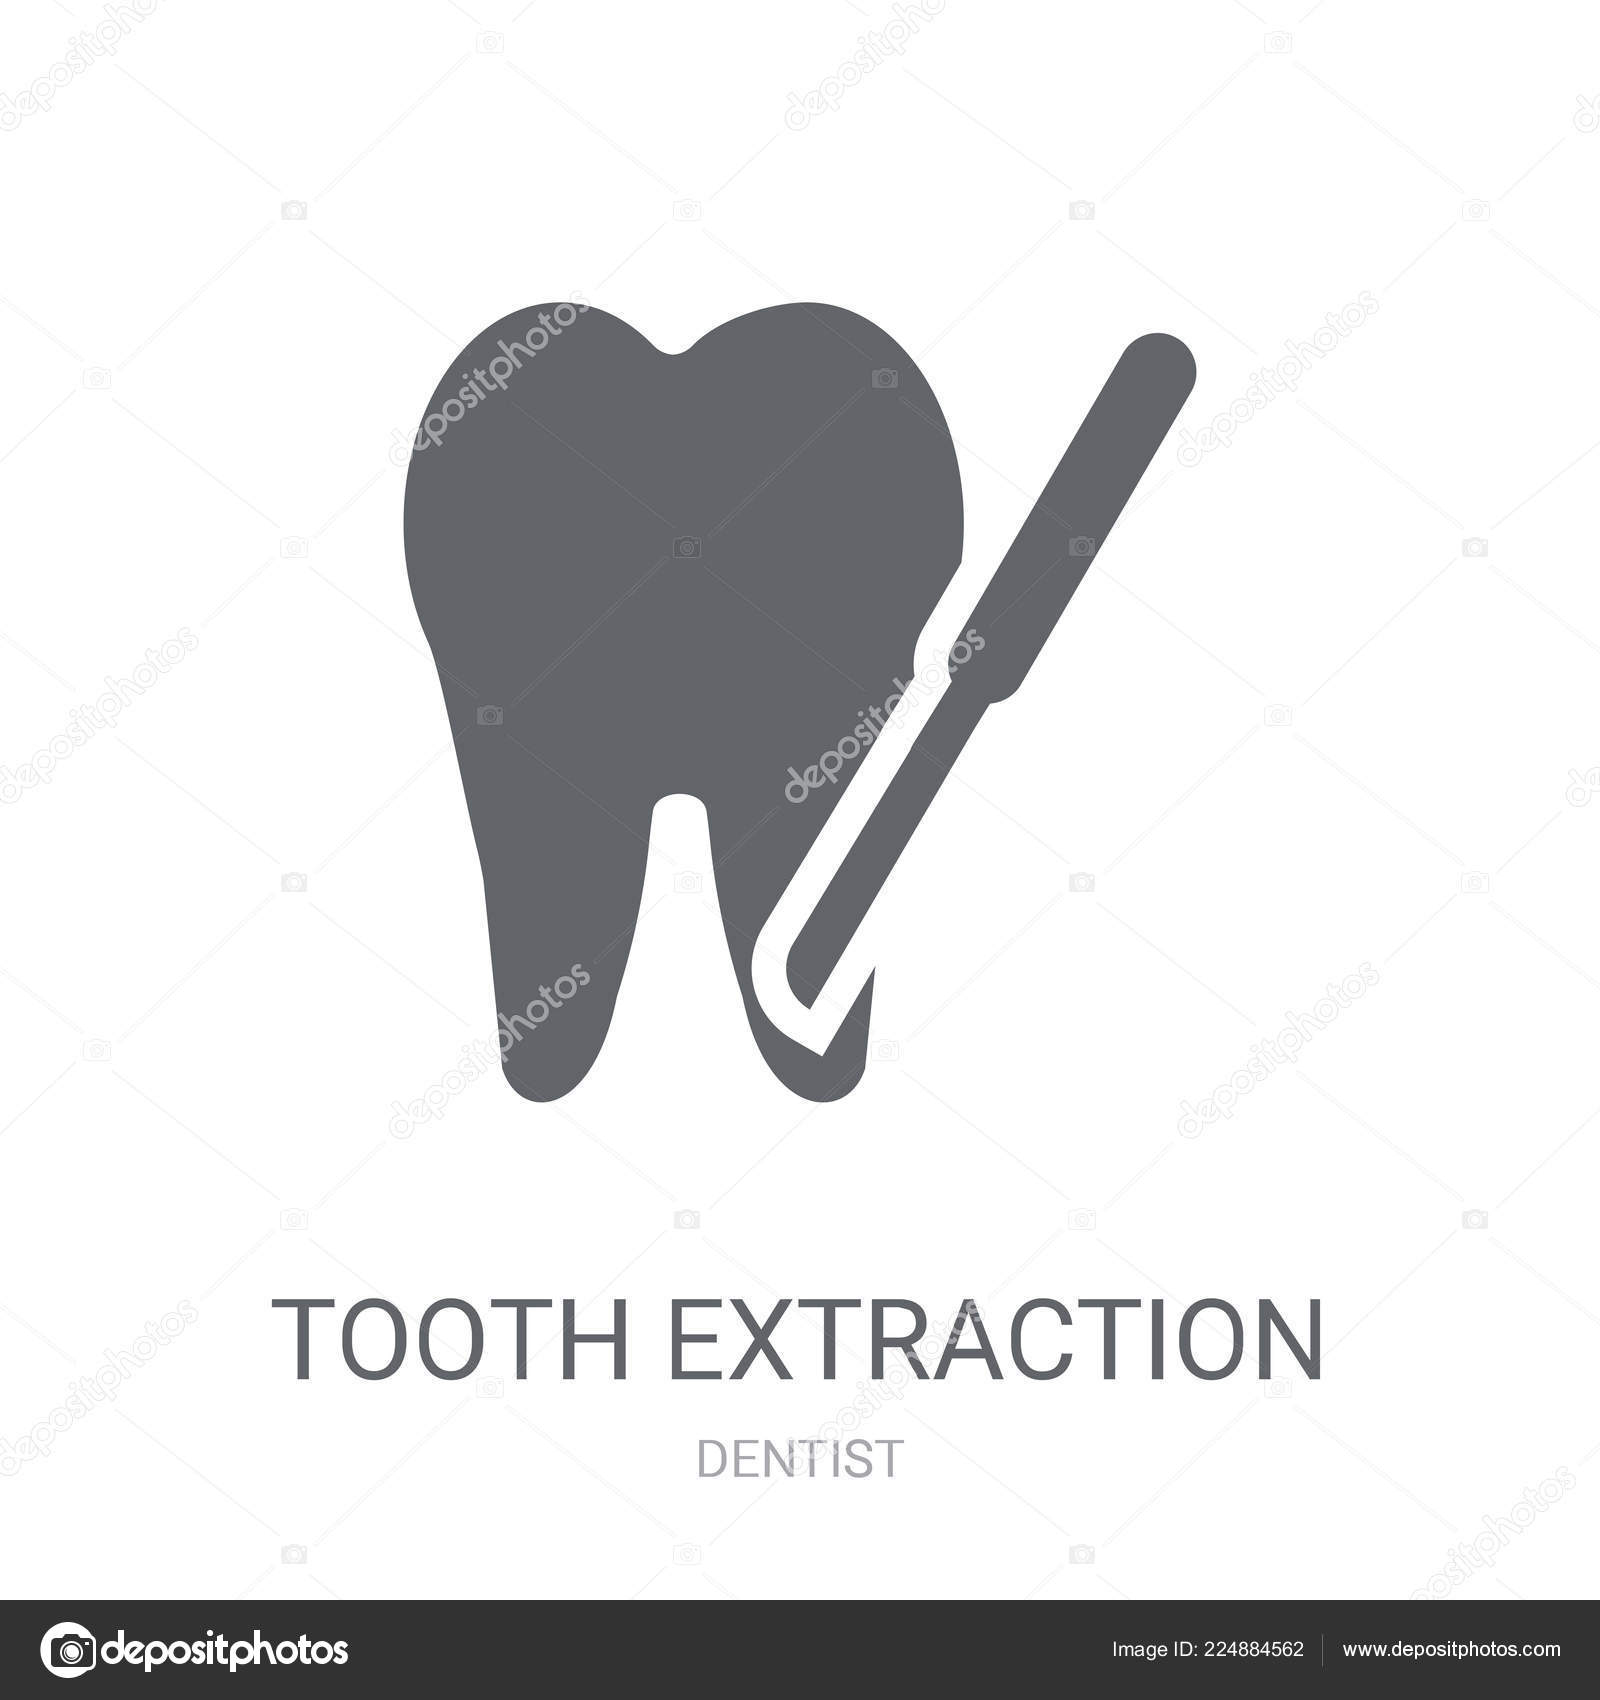 Tooth Extraction Icon Trendy Tooth Extraction Logo Concept